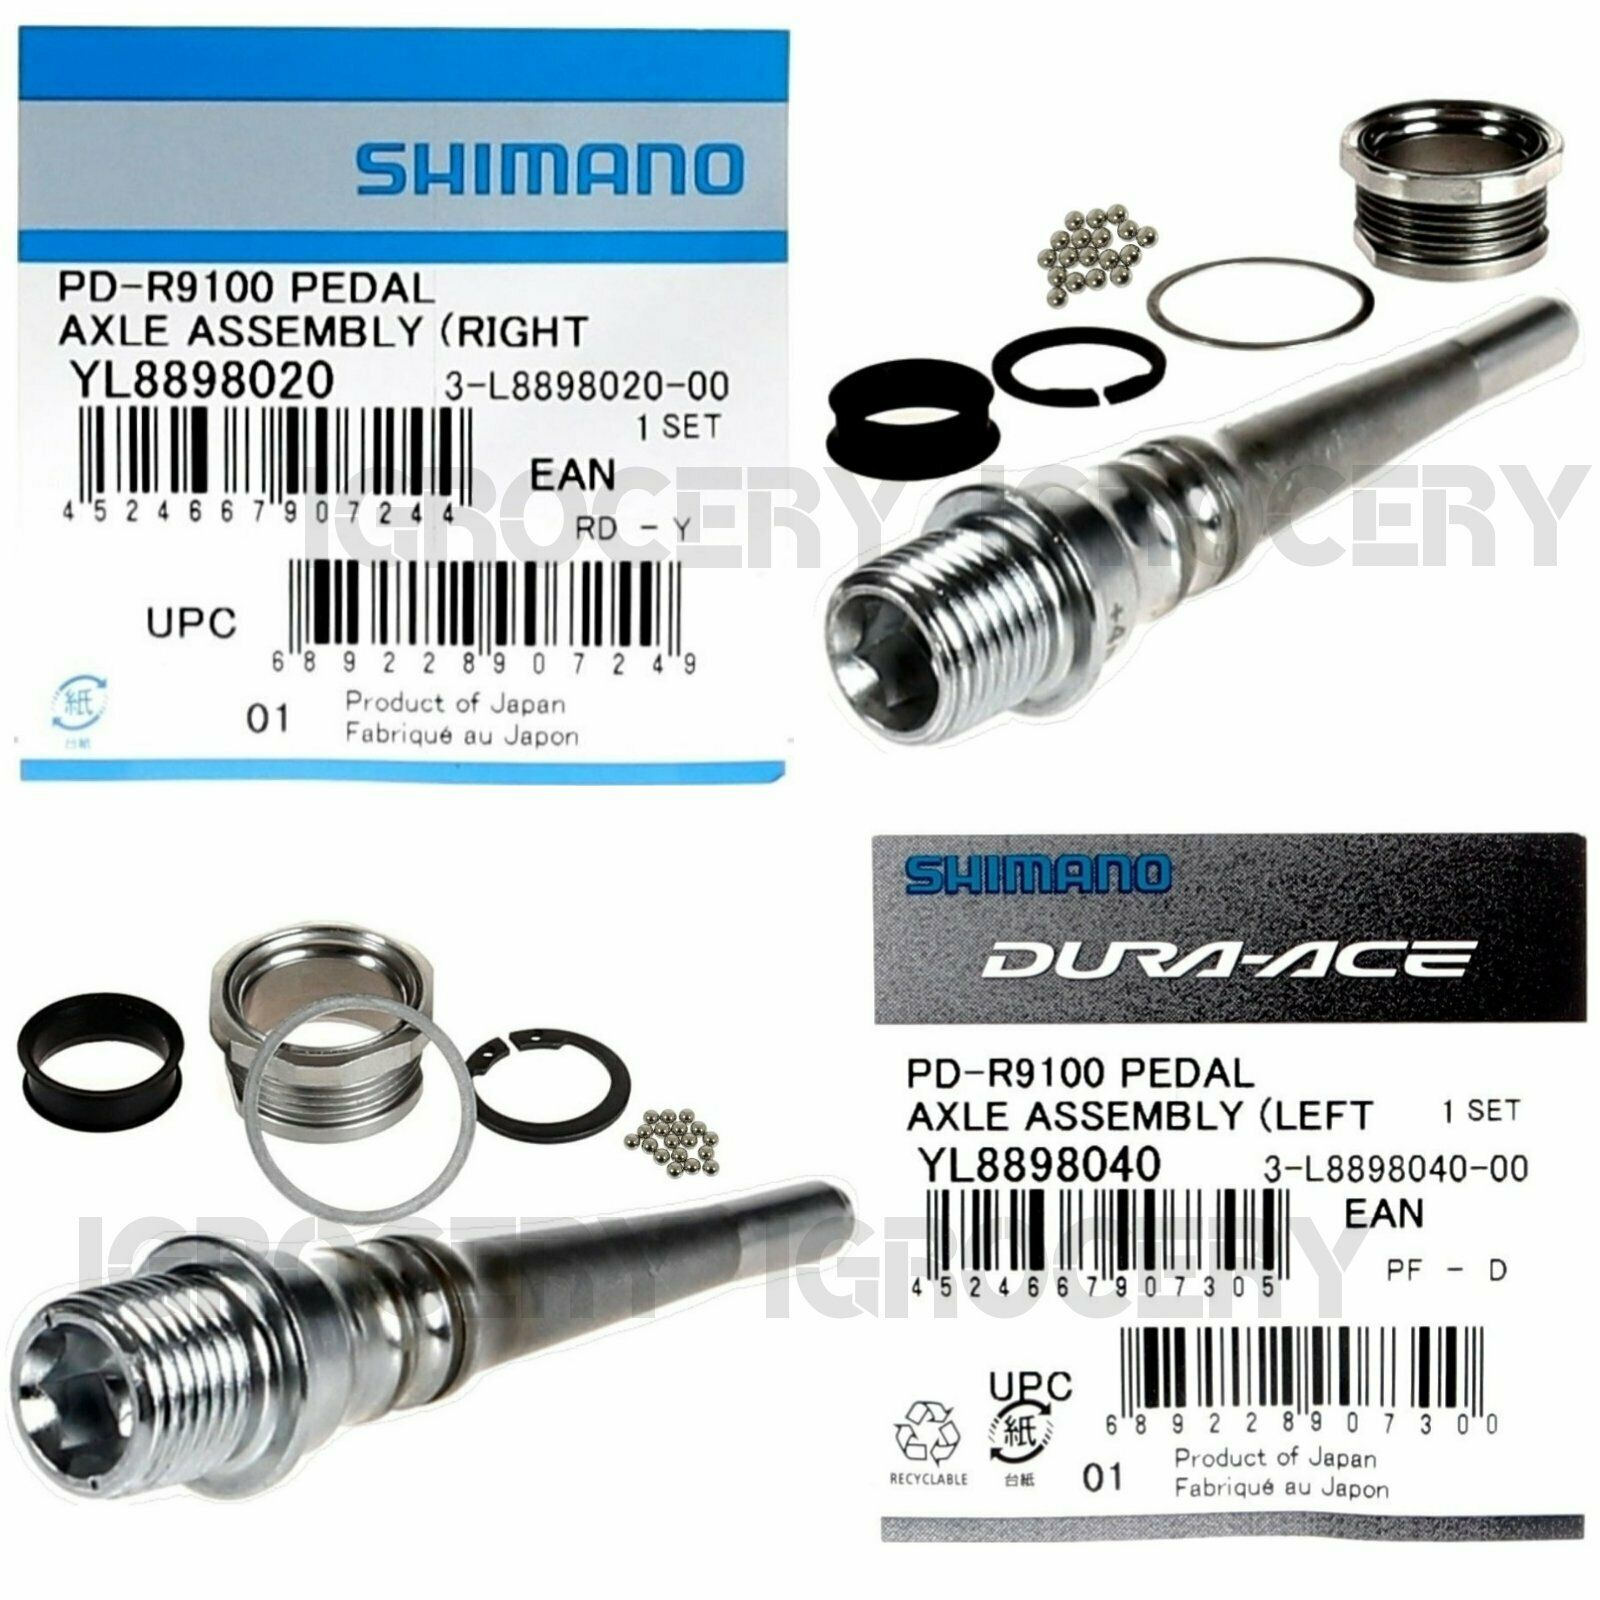 Shimano  Dura-Ace SPD-SL PD-R9100 Pedal +4mm Axle Longer Assembly Left Right Pair  not to be missed!